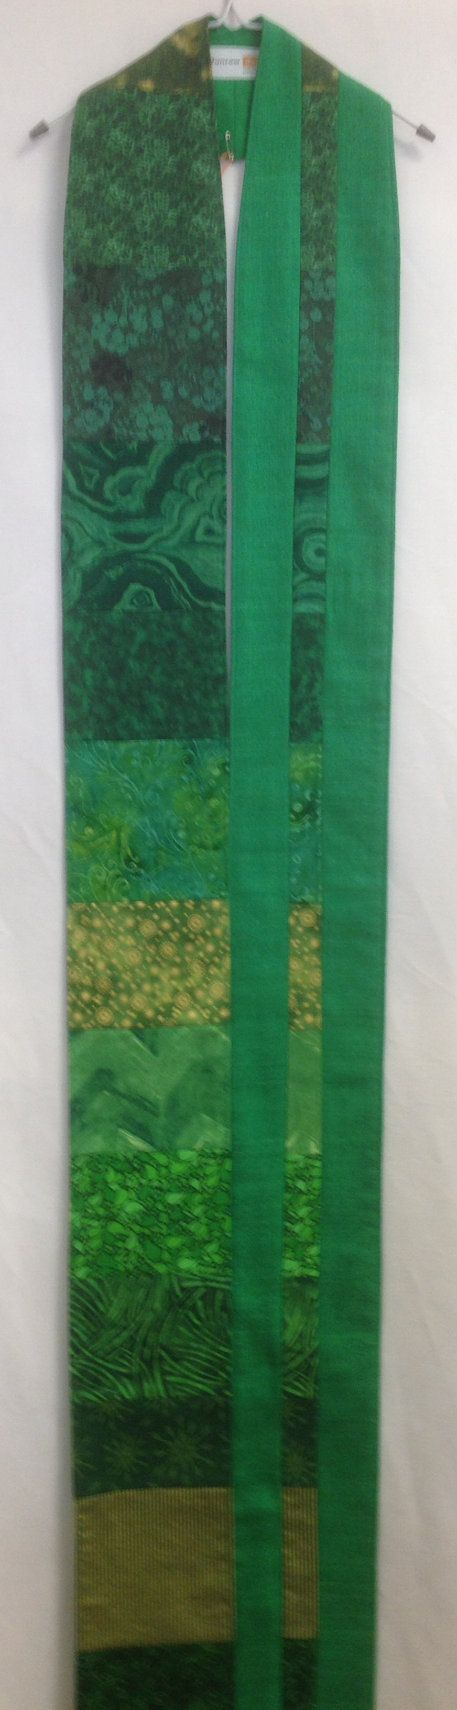 Liturgical Banner And Flowers | Gardening: Flower and Vegetables